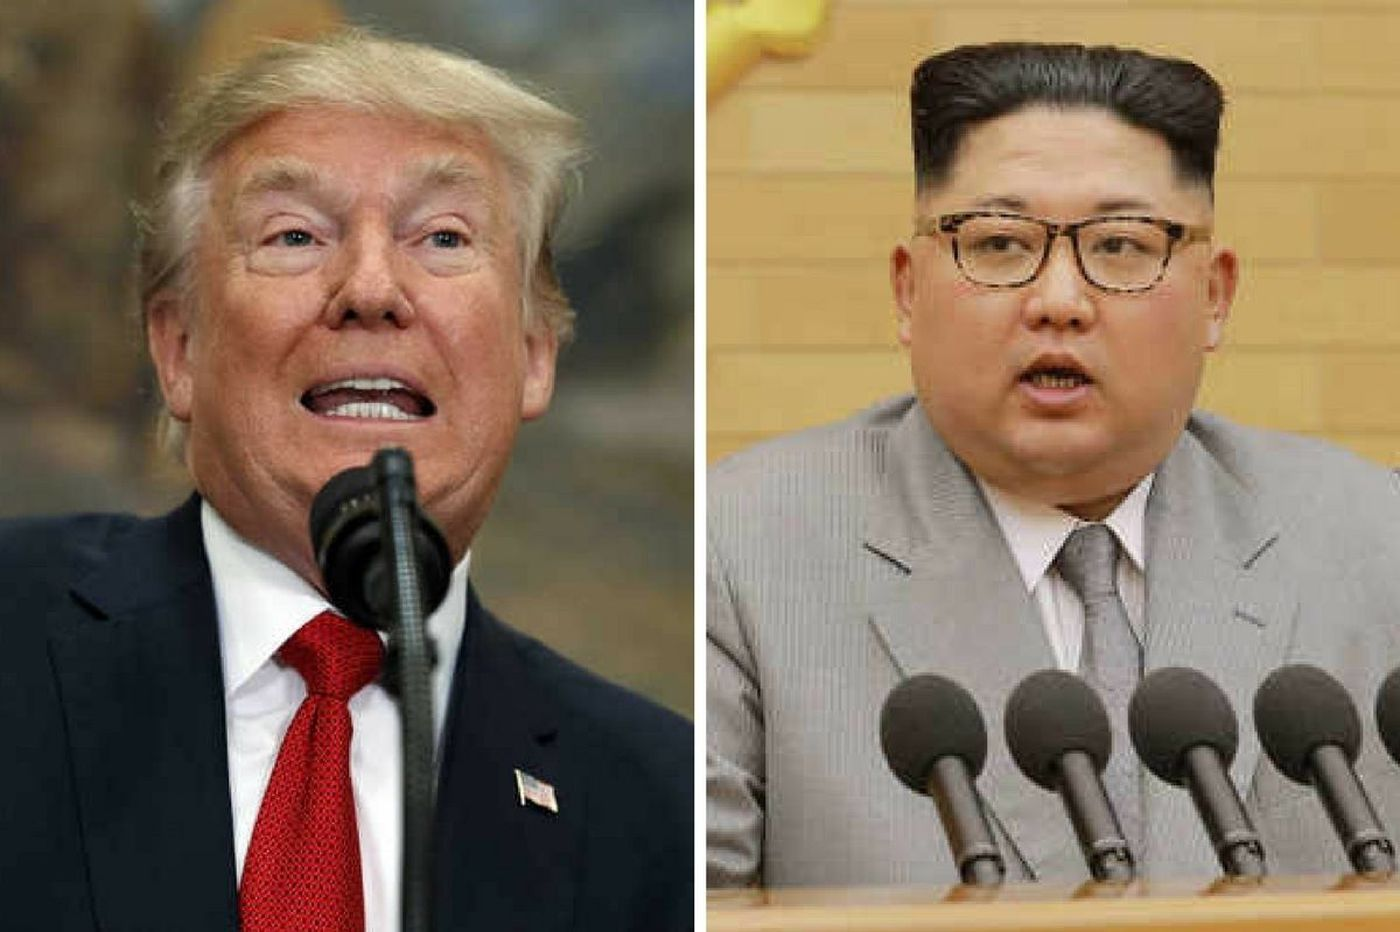 Button Man vs. Rocket Man could lead to nuclear war | Trudy Rubin